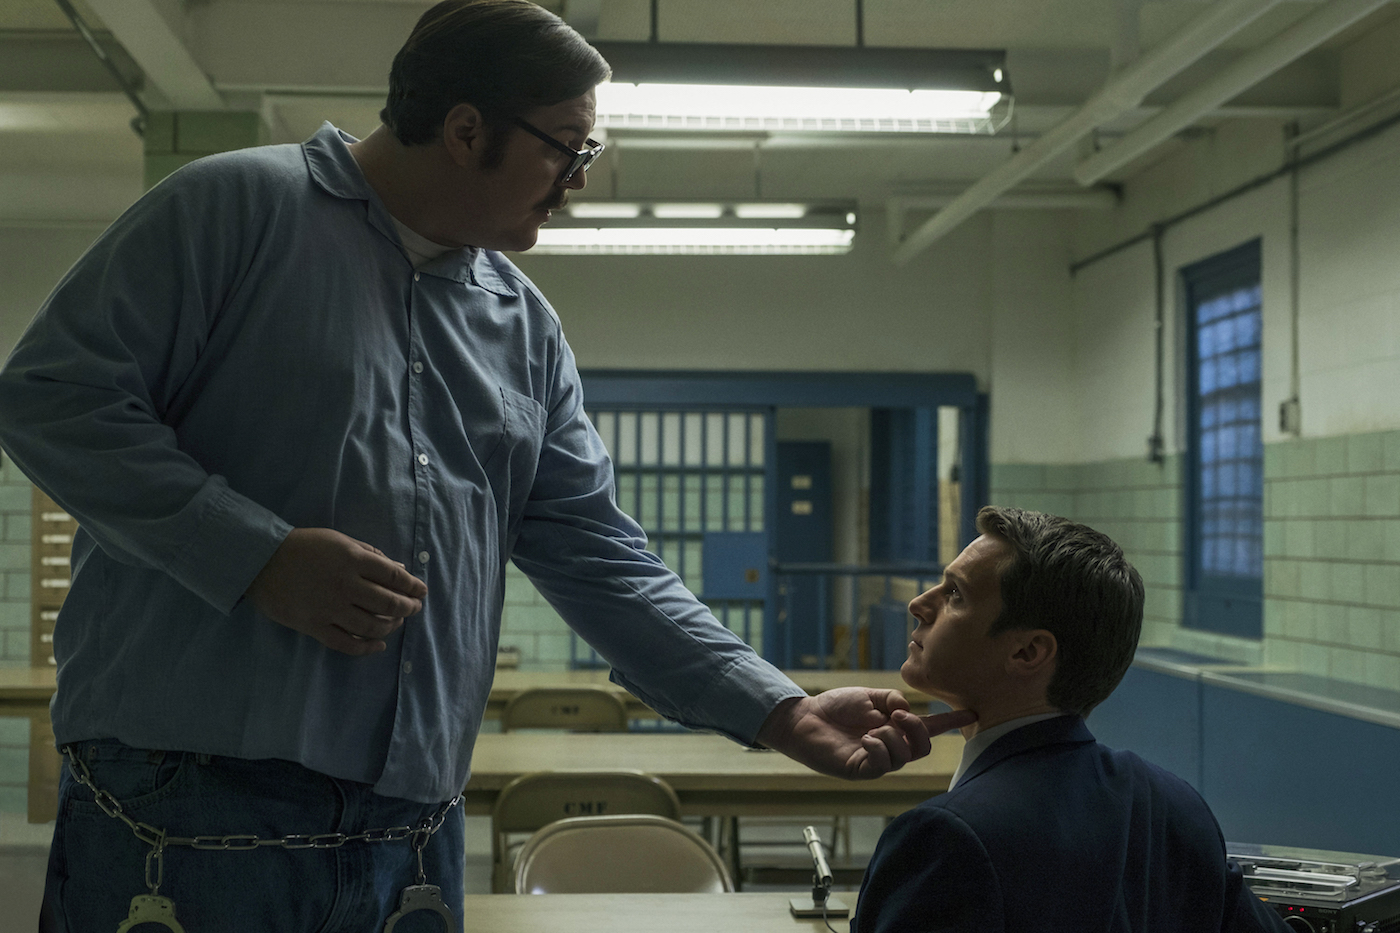 Cameron Britton Breaks Through Playing Real Life Serial